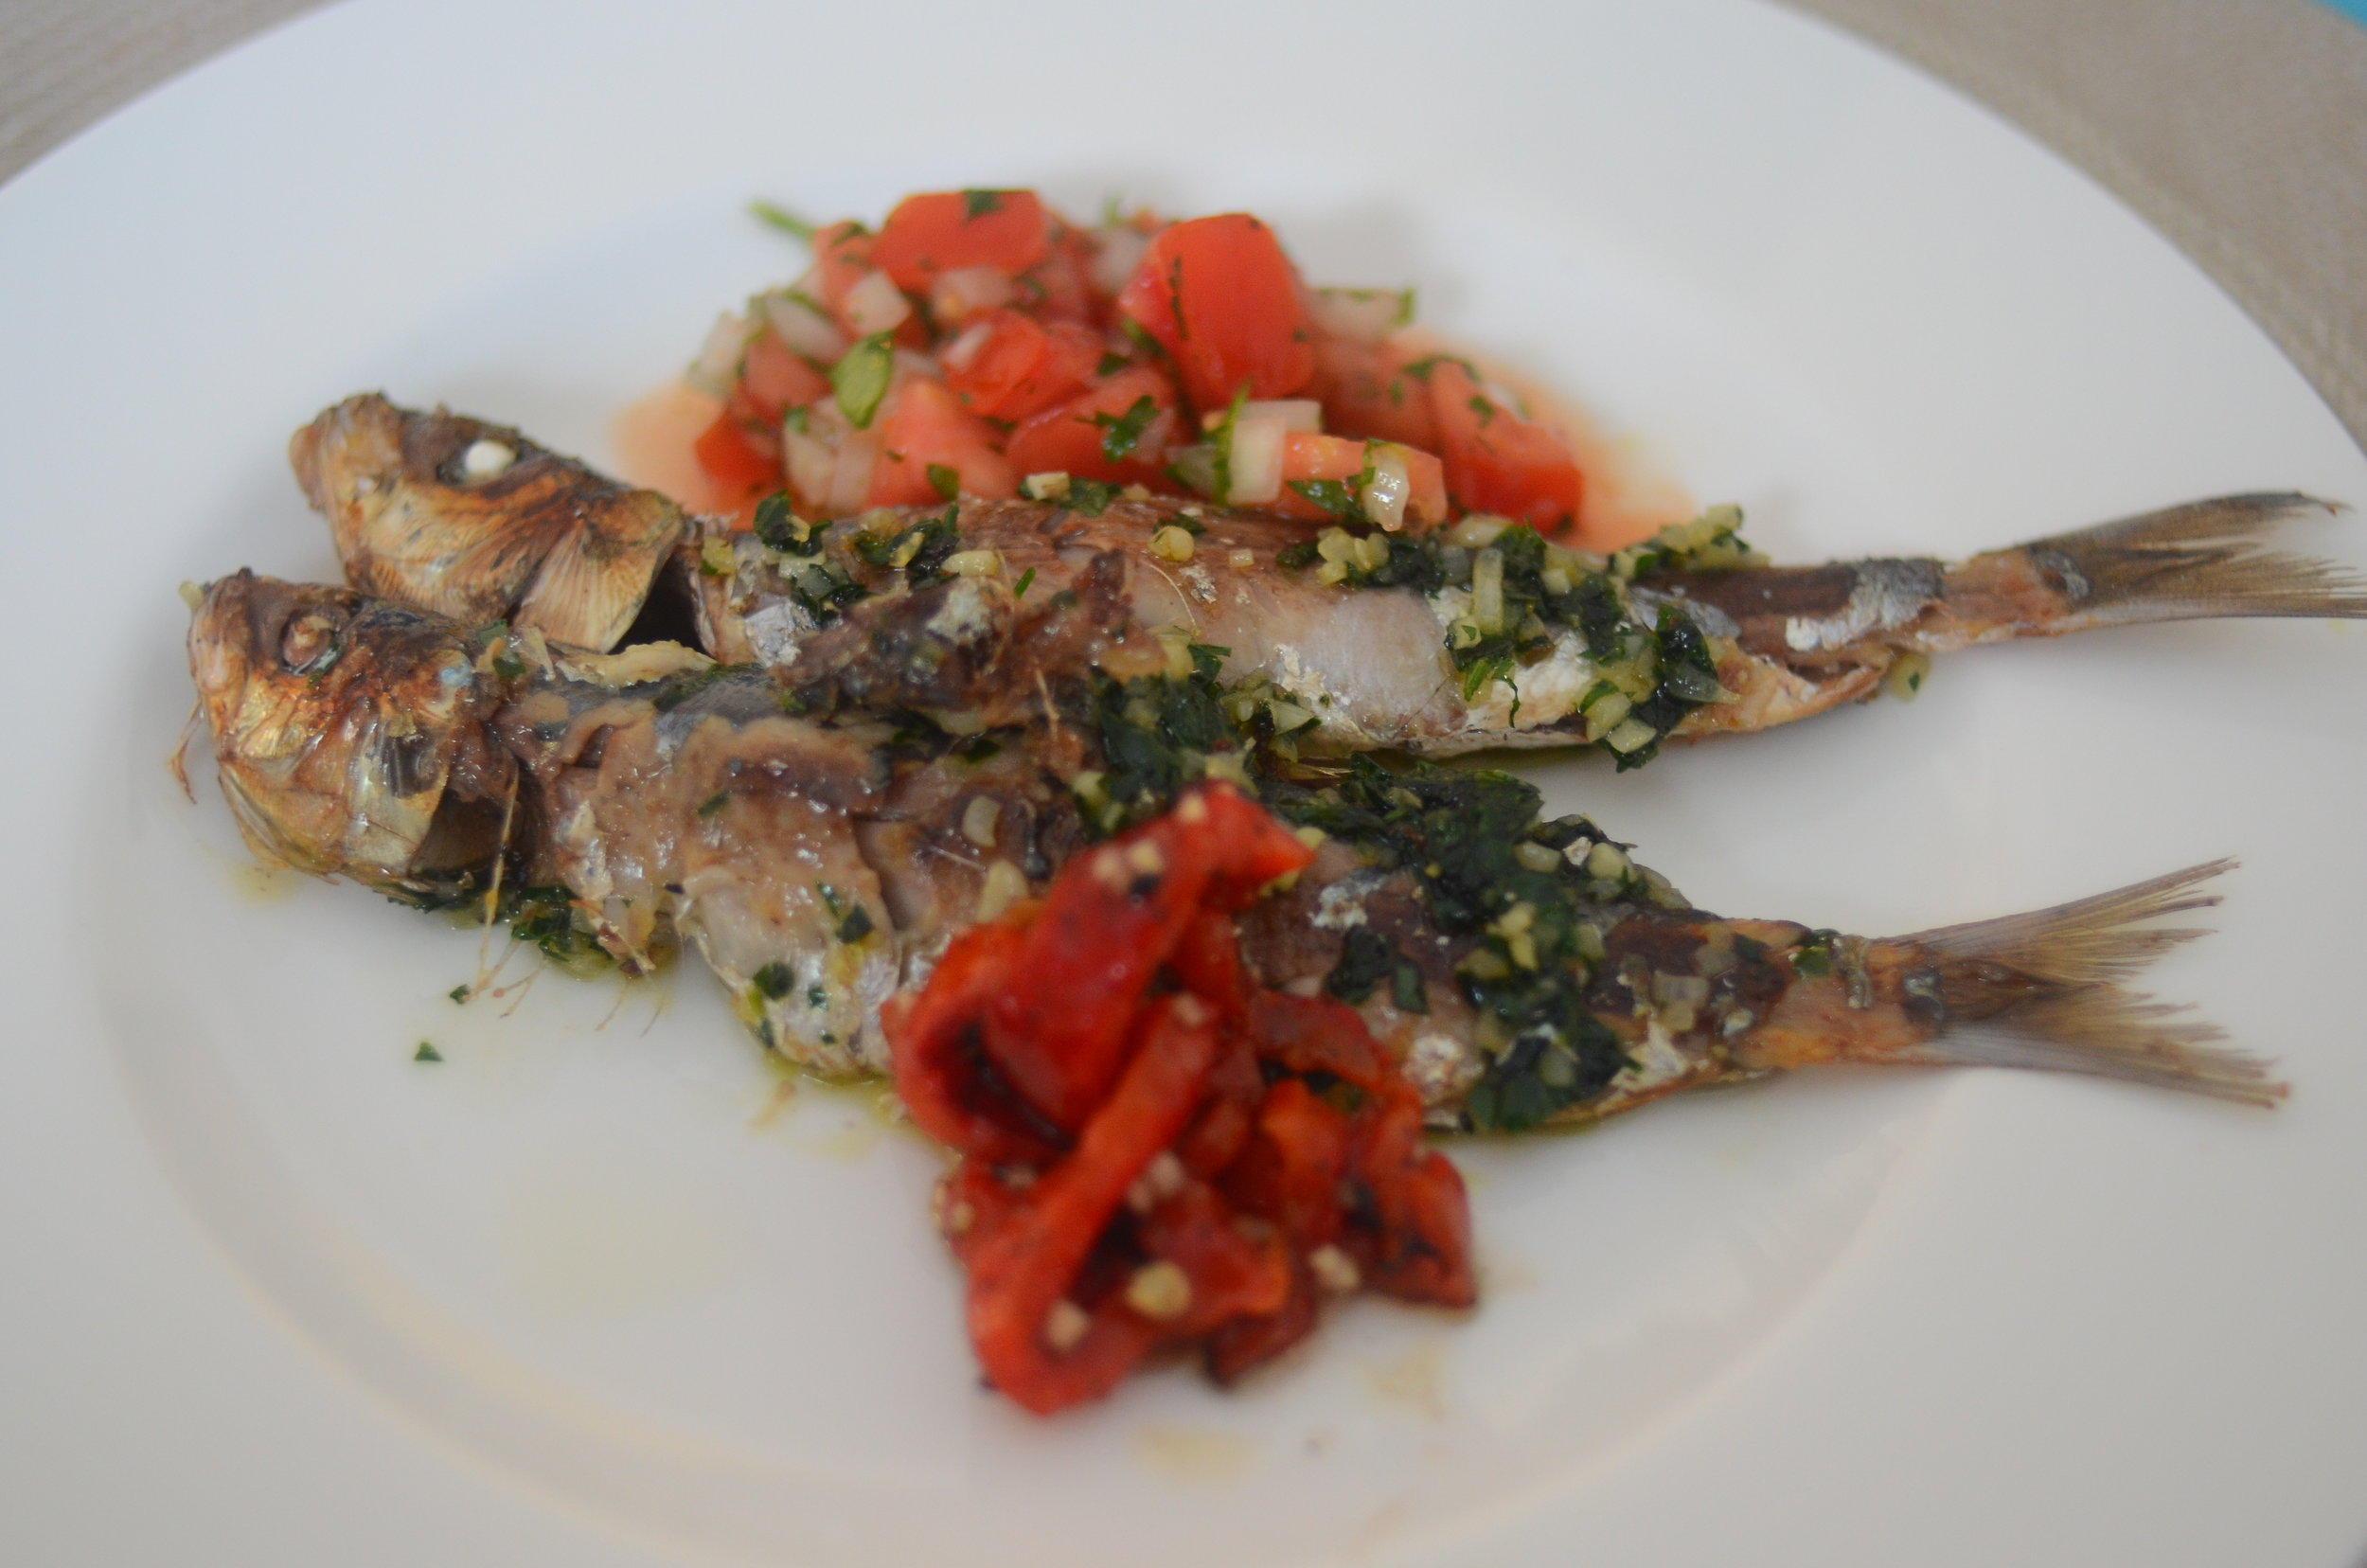 Delicate sardines smothered in rich tomato relish.